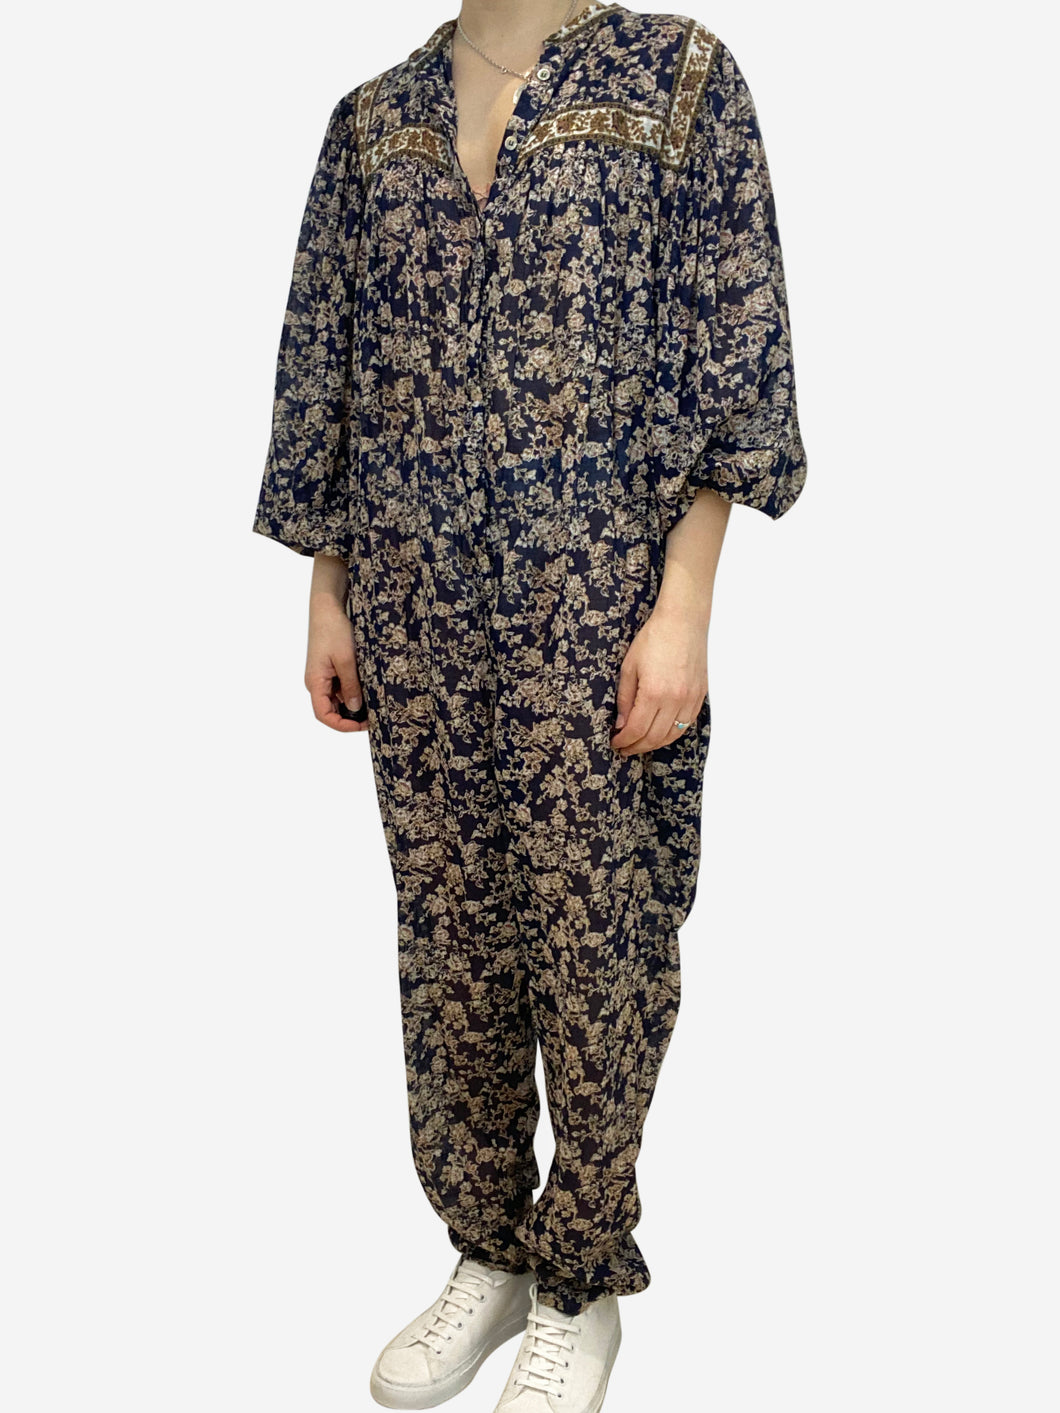 Navy and beige paisley print cotton jumpsuit- size UK 10